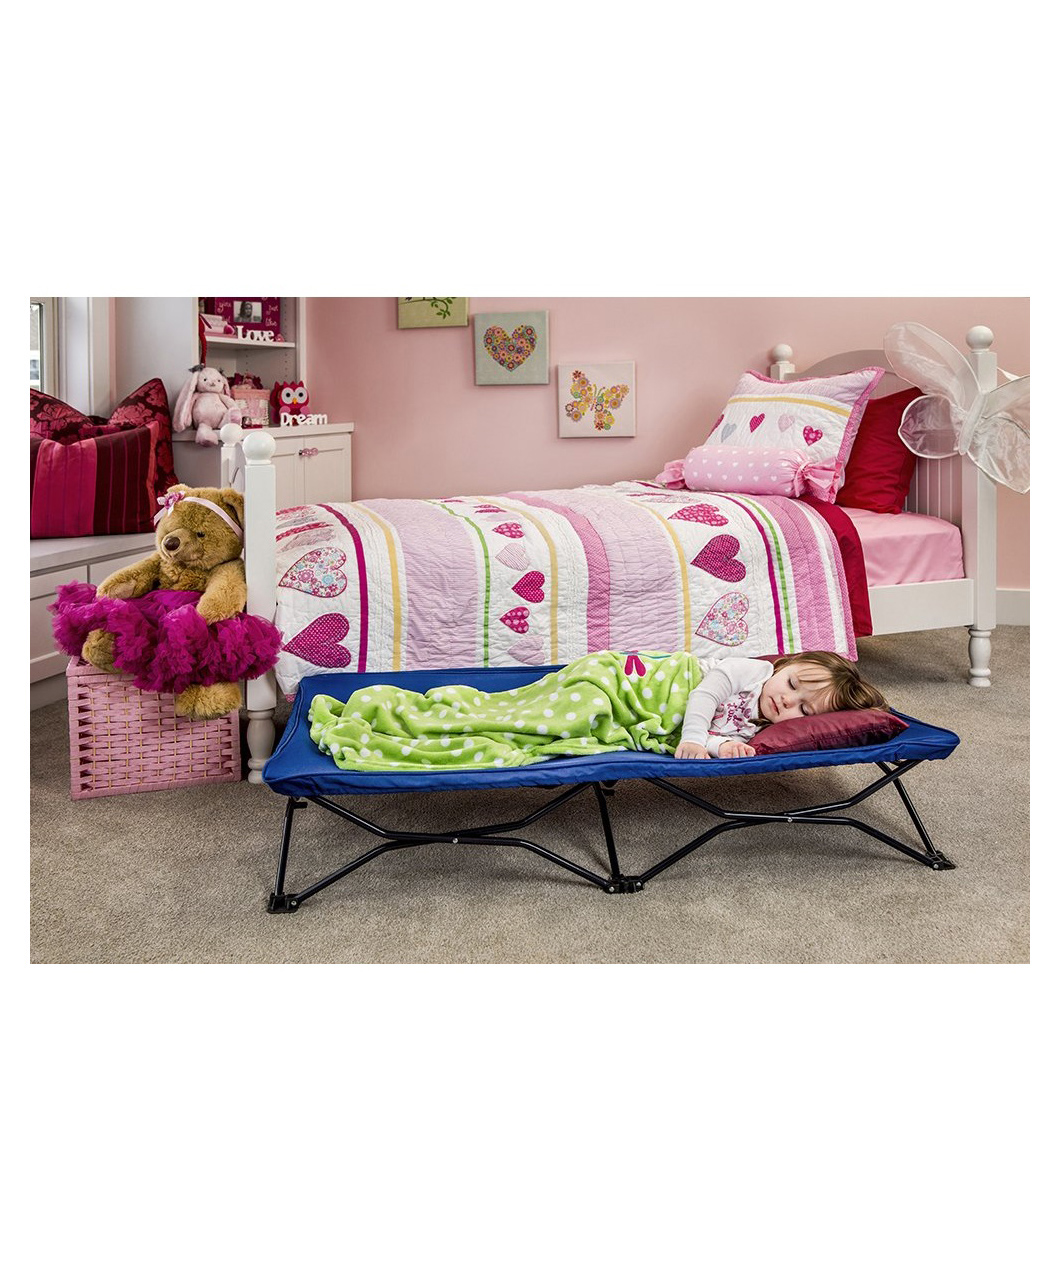 Regalo My Cot Portable Toddler Bed - Royal Blue Online in ...